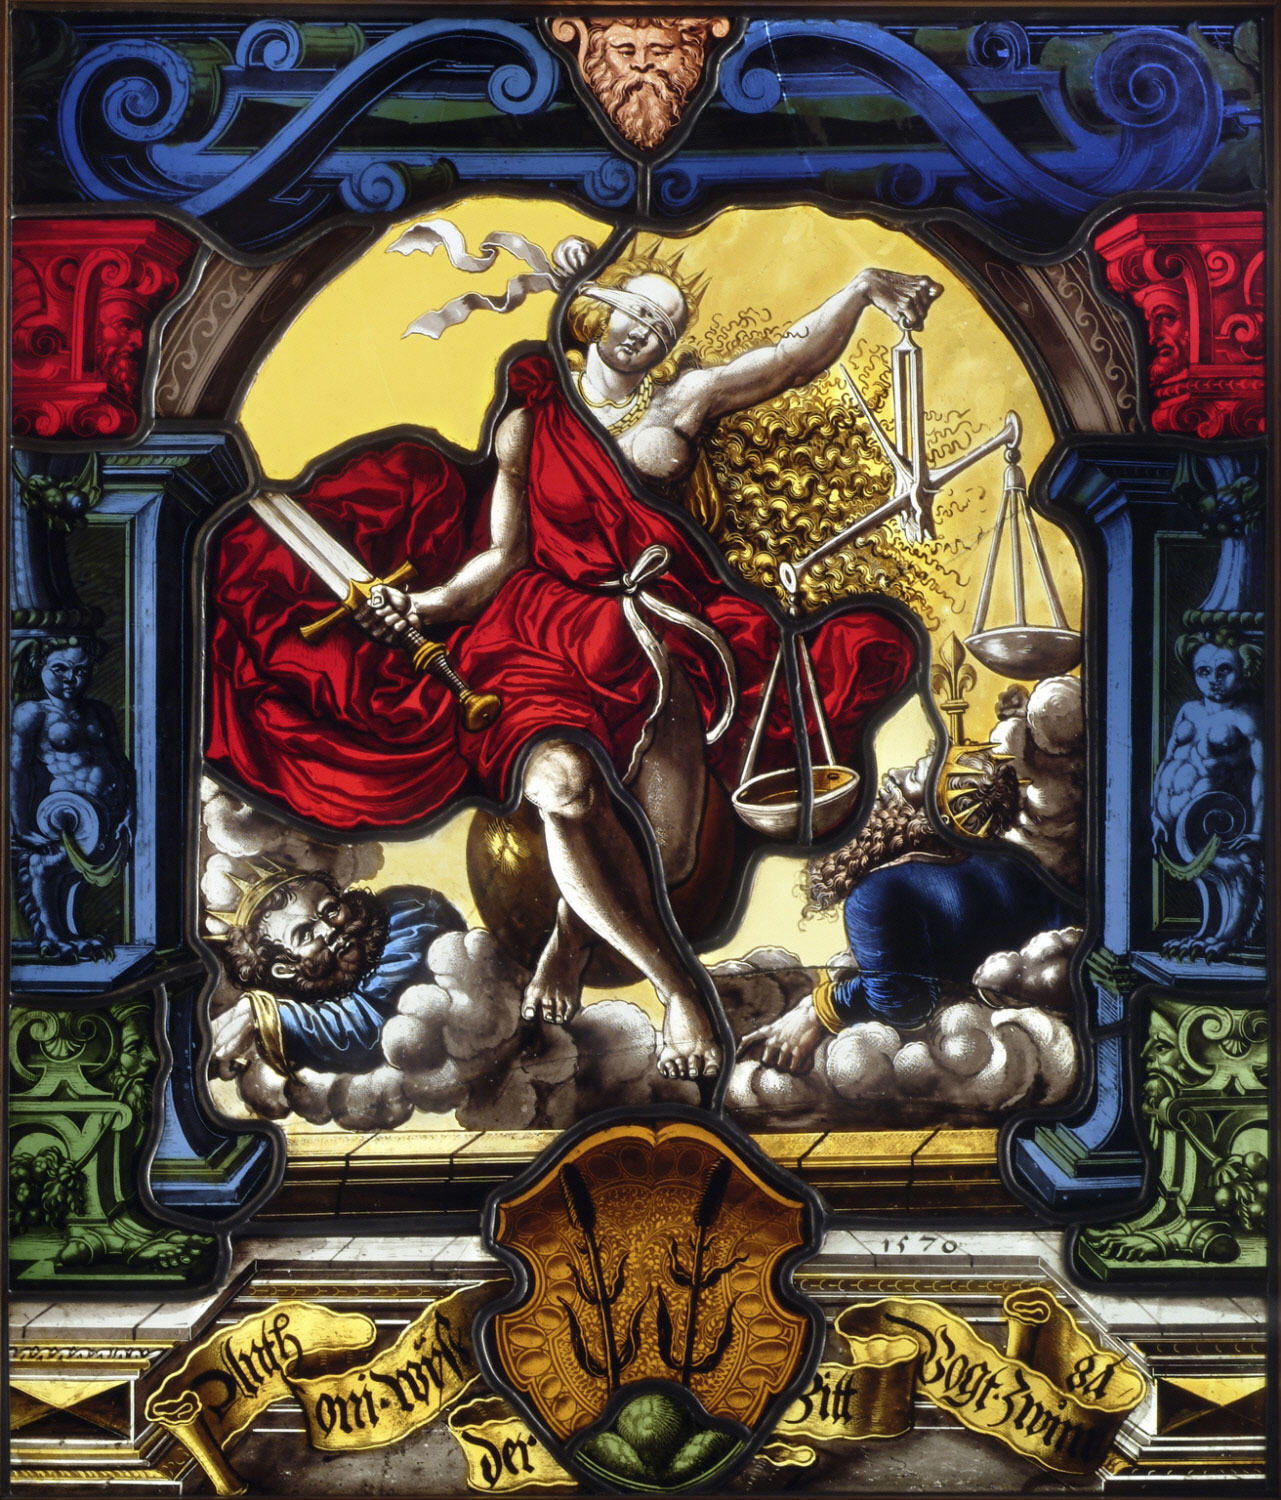 Allegory of Justice with the Coat of Arms of Anthoni Wyss (1531-1588)